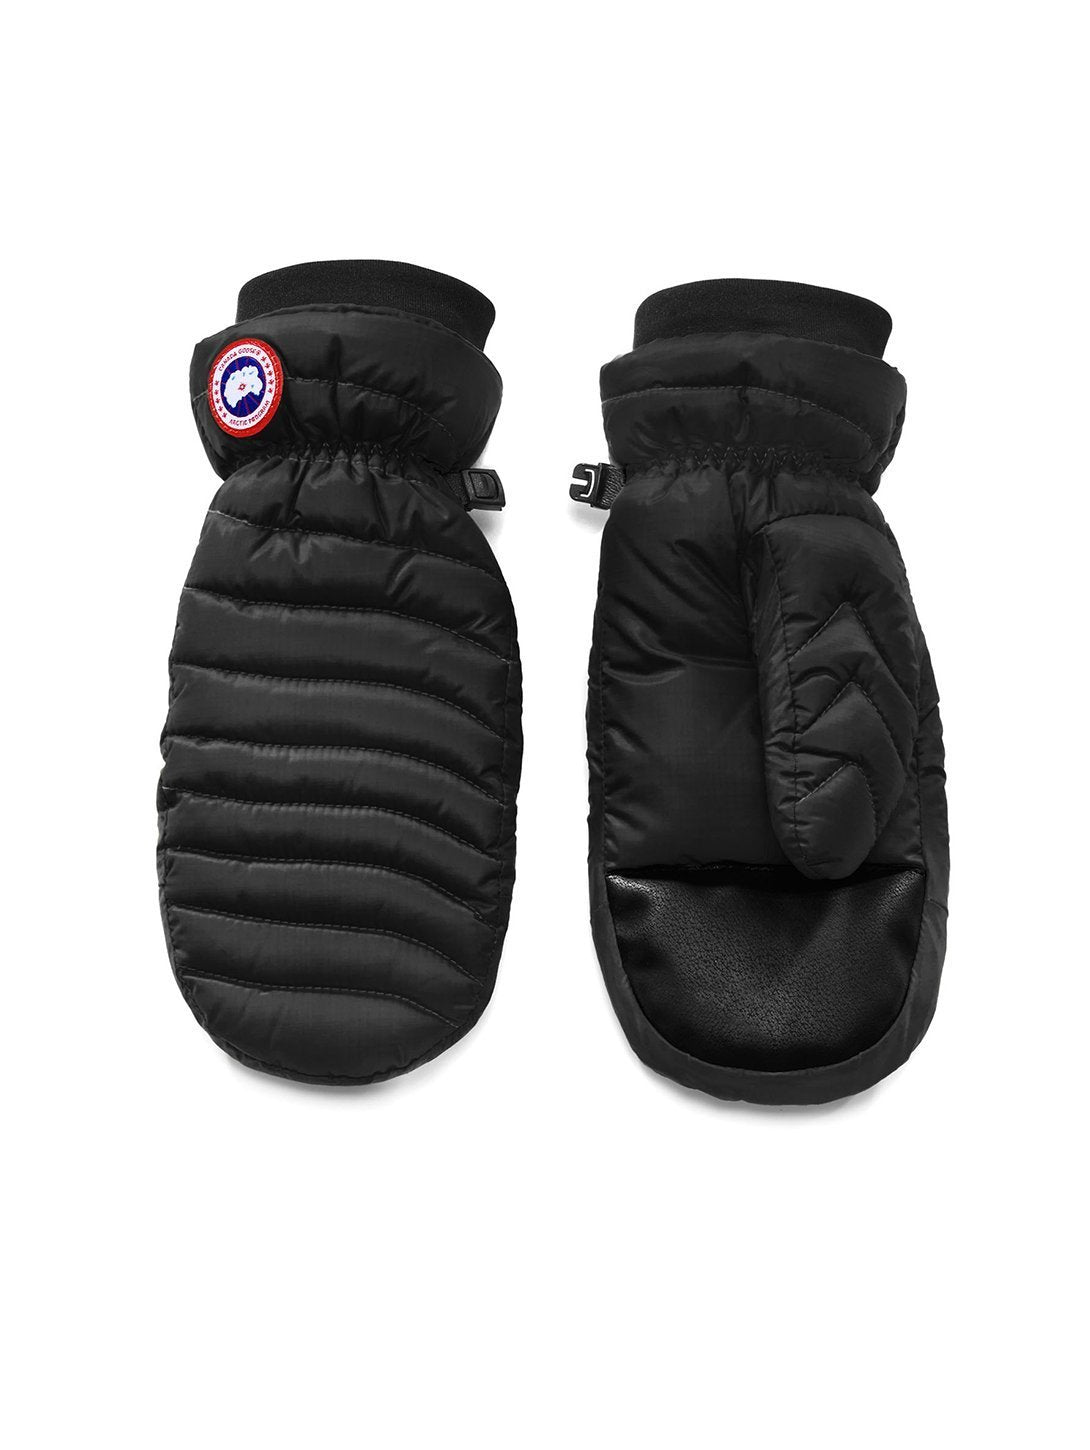 Lightweight Mitts for Women-Canada Goose-Over the Rainbow